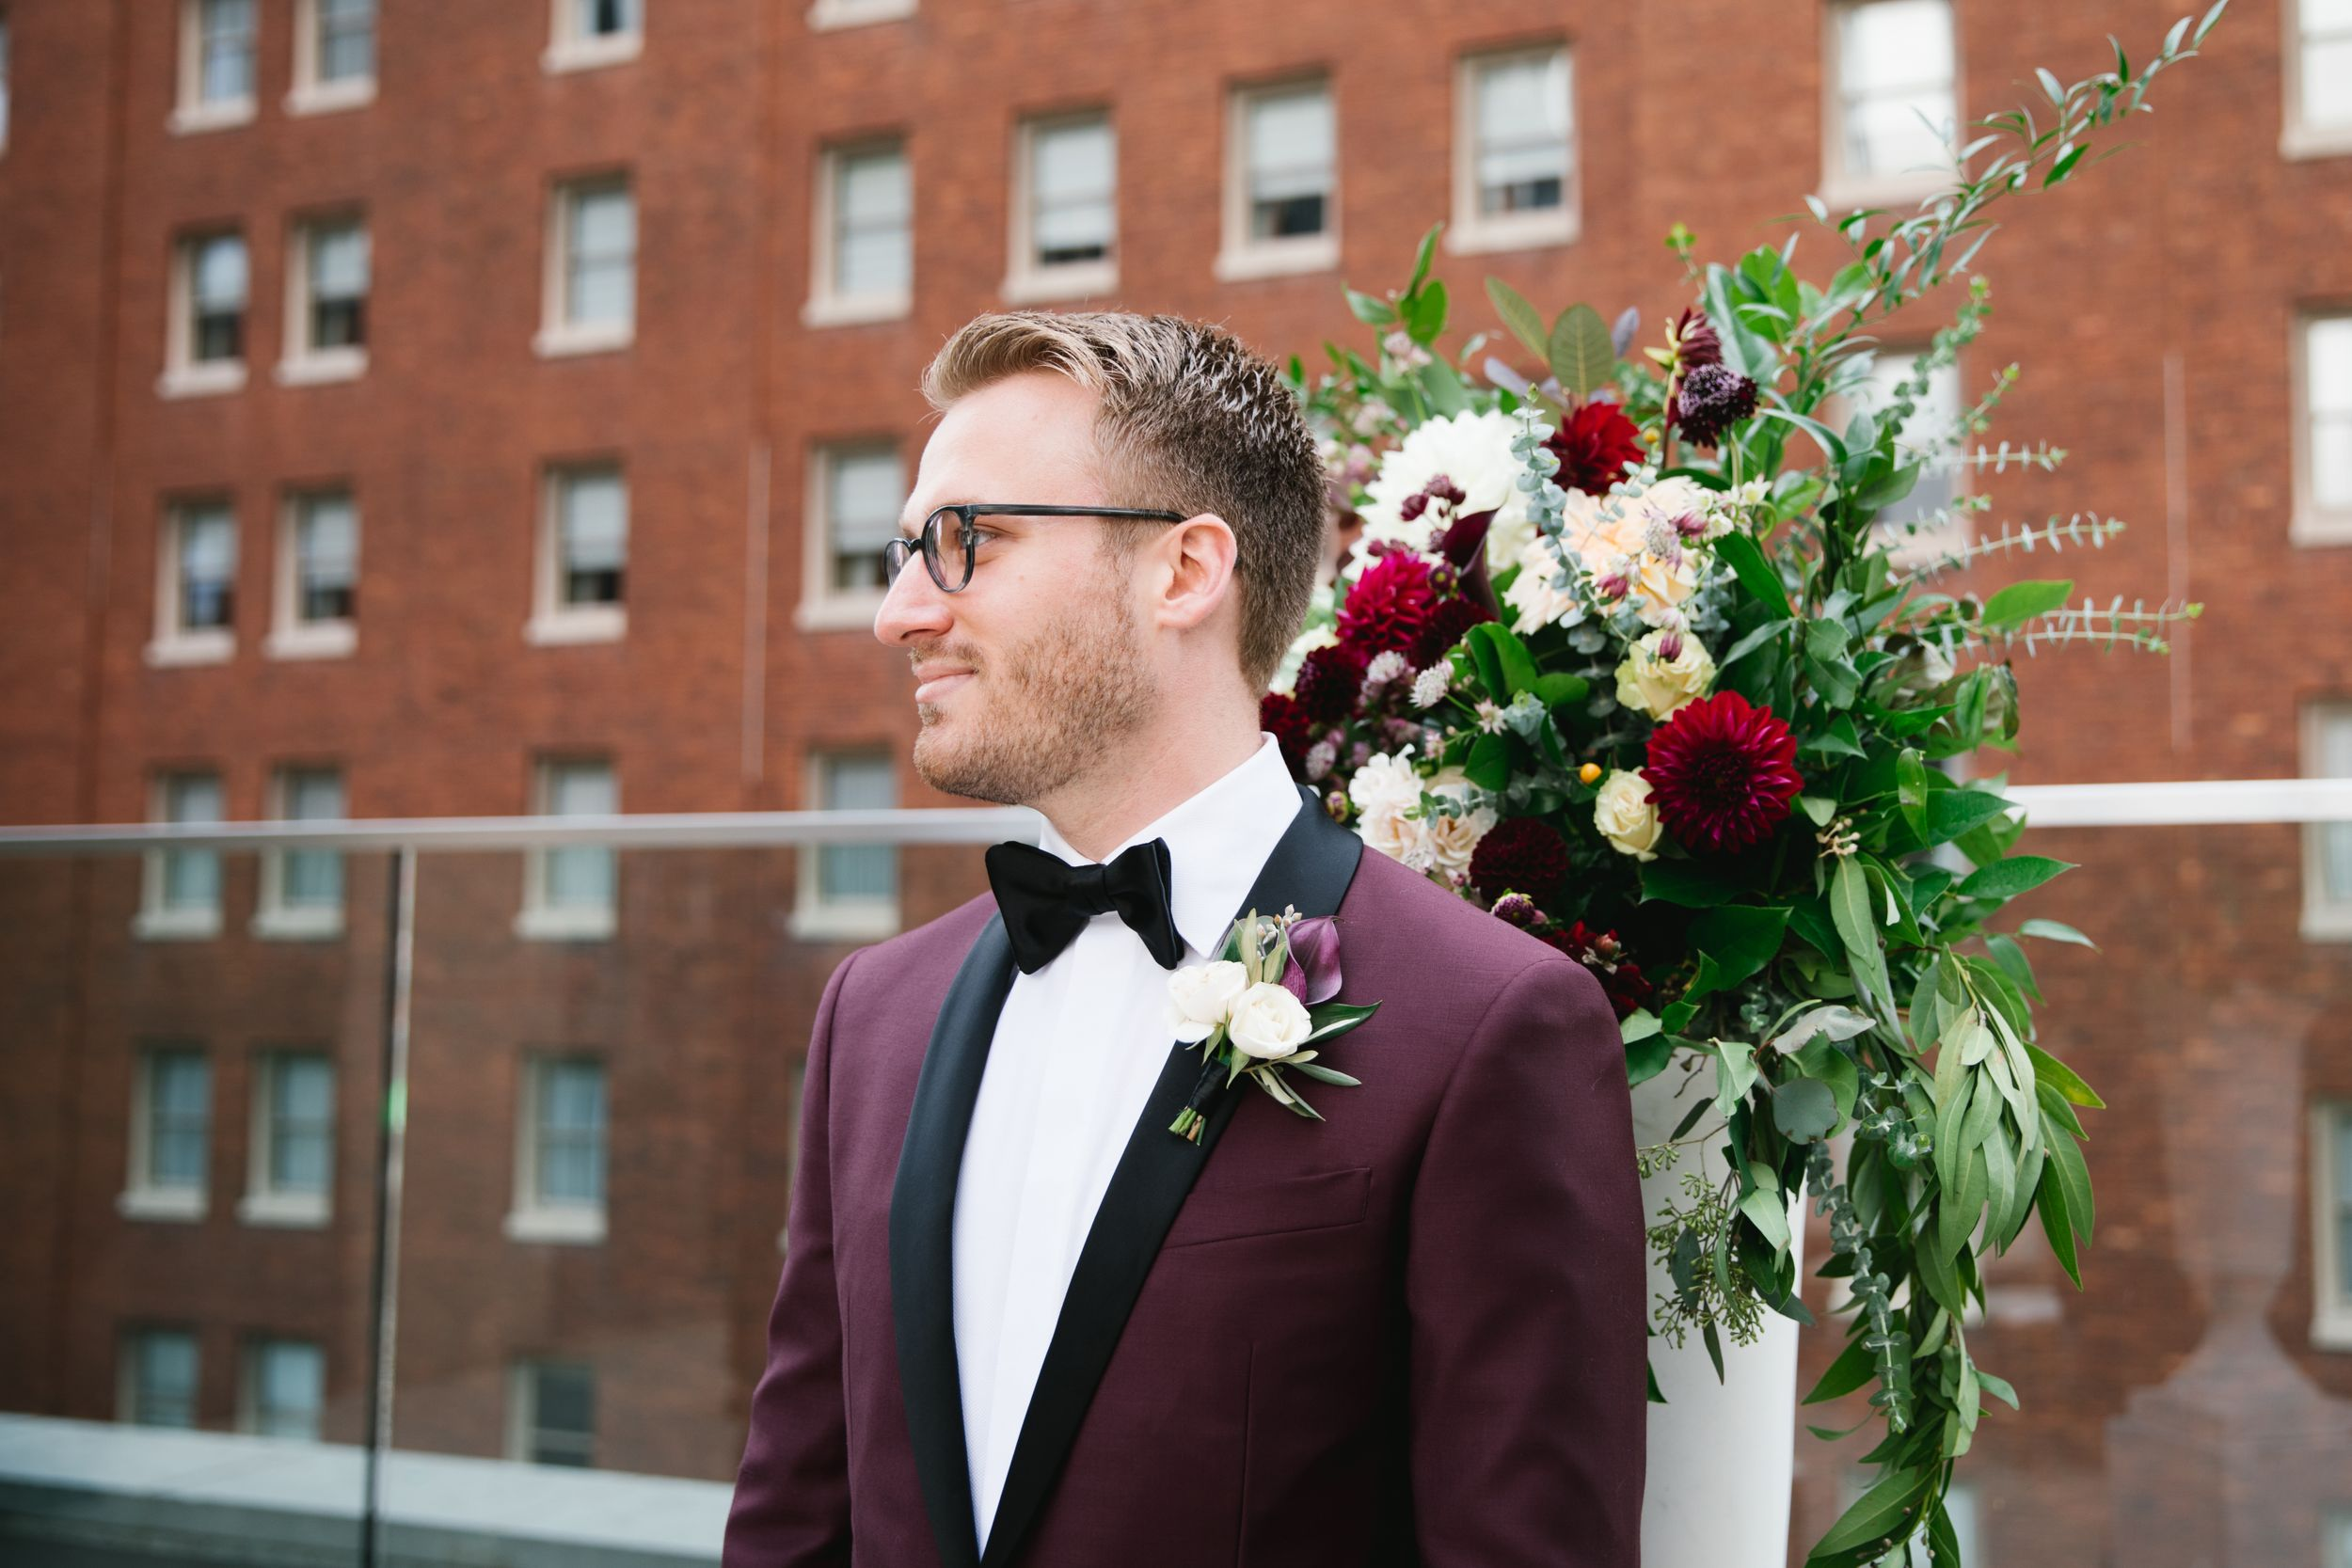 groom looking at bride walking down the aisle with building behind him